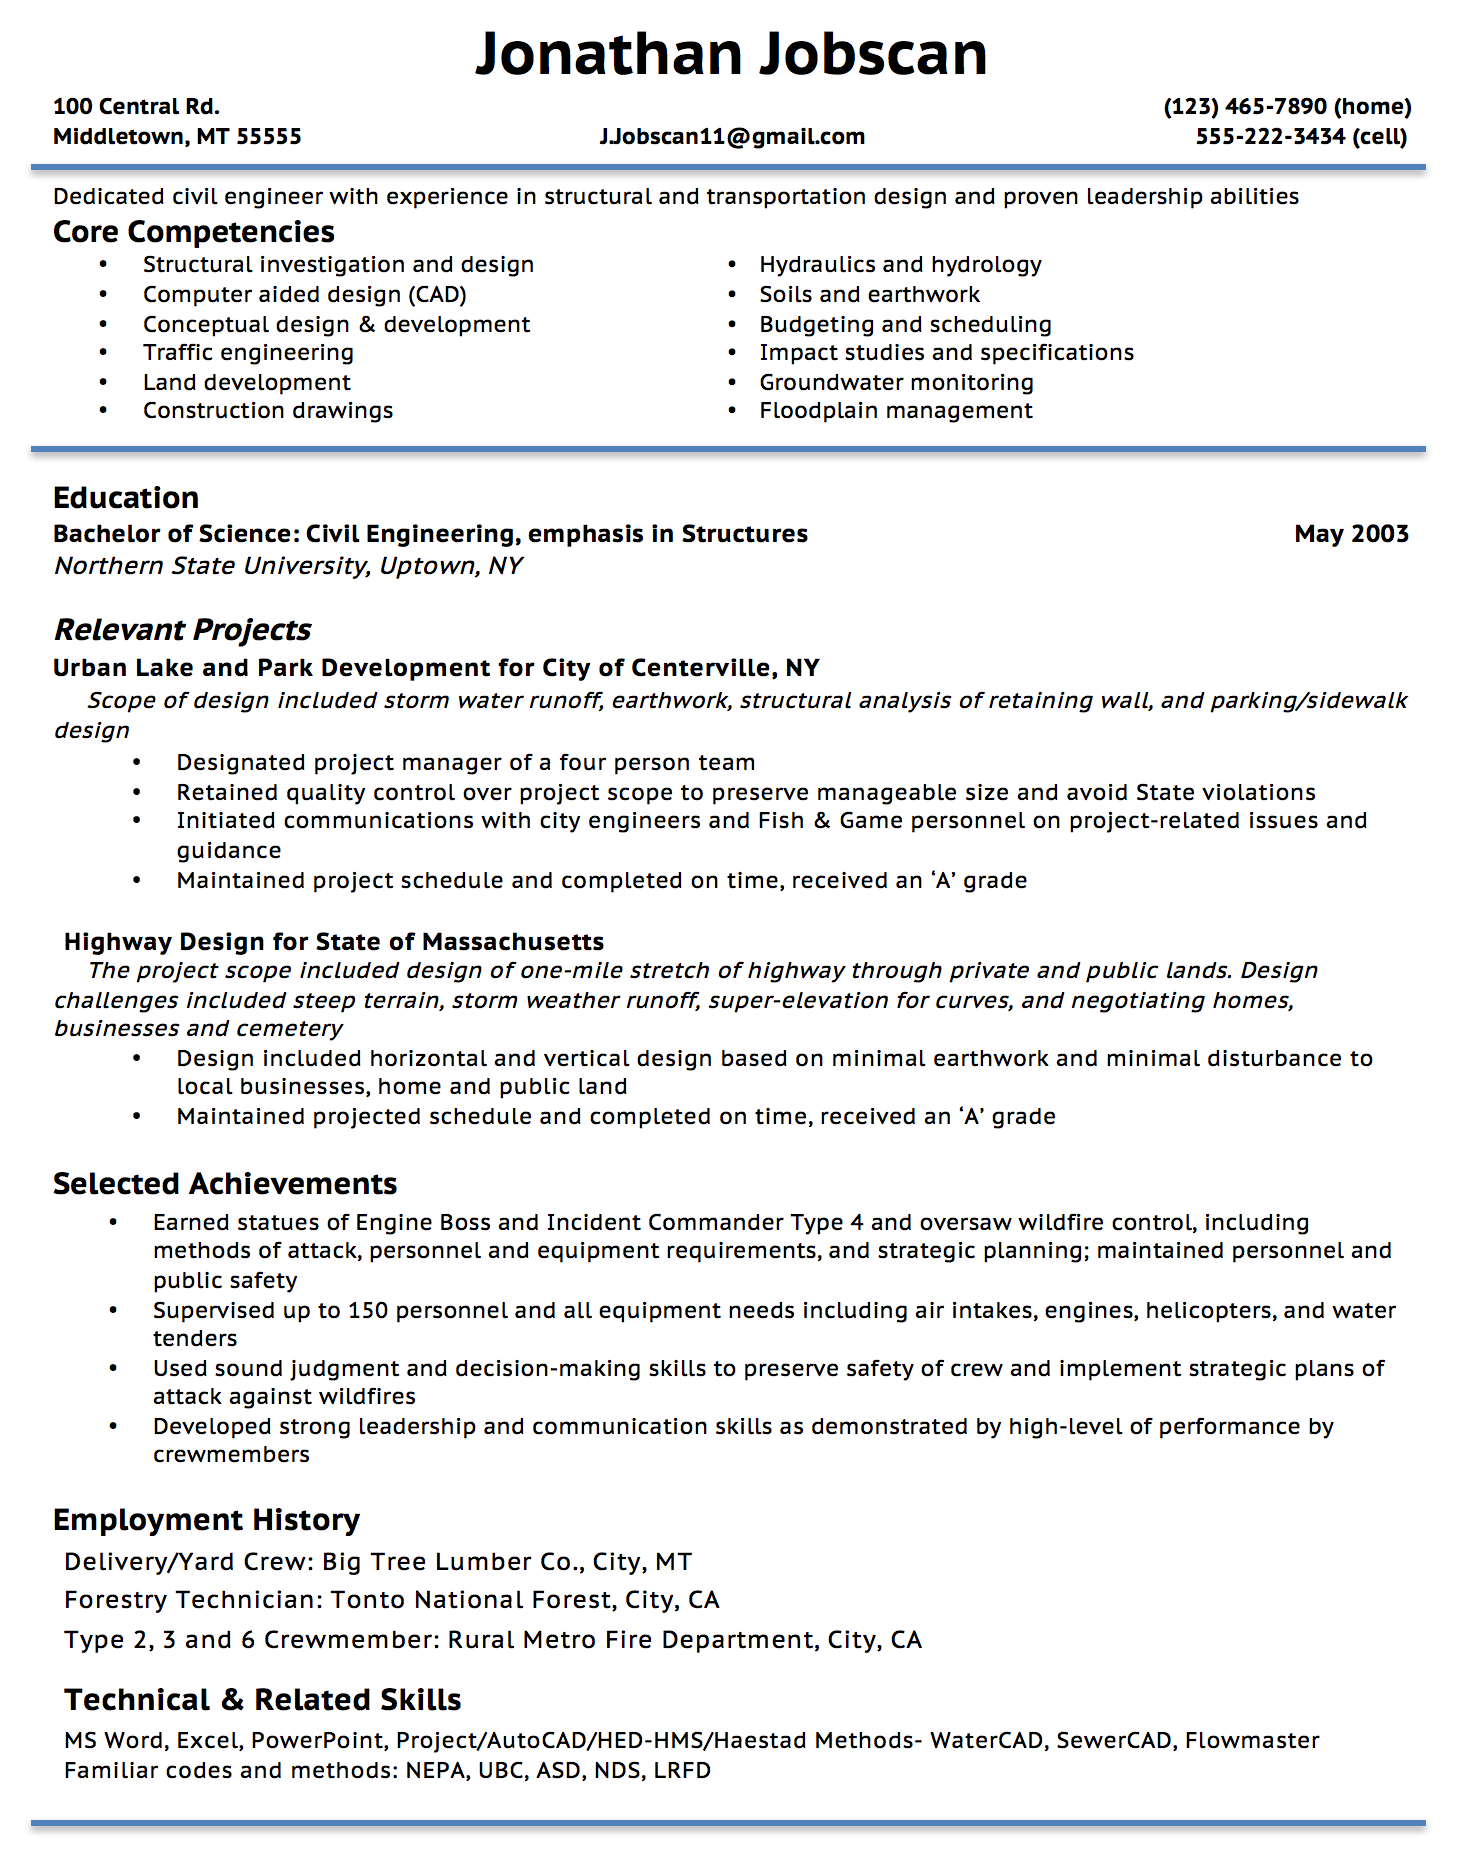 Opposenewapstandardsus  Seductive Resume Writing Guide  Jobscan With Magnificent Example Of A Functional Resume Format With Adorable It Resume Example Also Resume Vs Curriculum Vitae In Addition Fashion Design Resume And Summaries For Resumes As Well As Warehouse Resume Skills Additionally Restaurant Resume Example From Jobscanco With Opposenewapstandardsus  Magnificent Resume Writing Guide  Jobscan With Adorable Example Of A Functional Resume Format And Seductive It Resume Example Also Resume Vs Curriculum Vitae In Addition Fashion Design Resume From Jobscanco